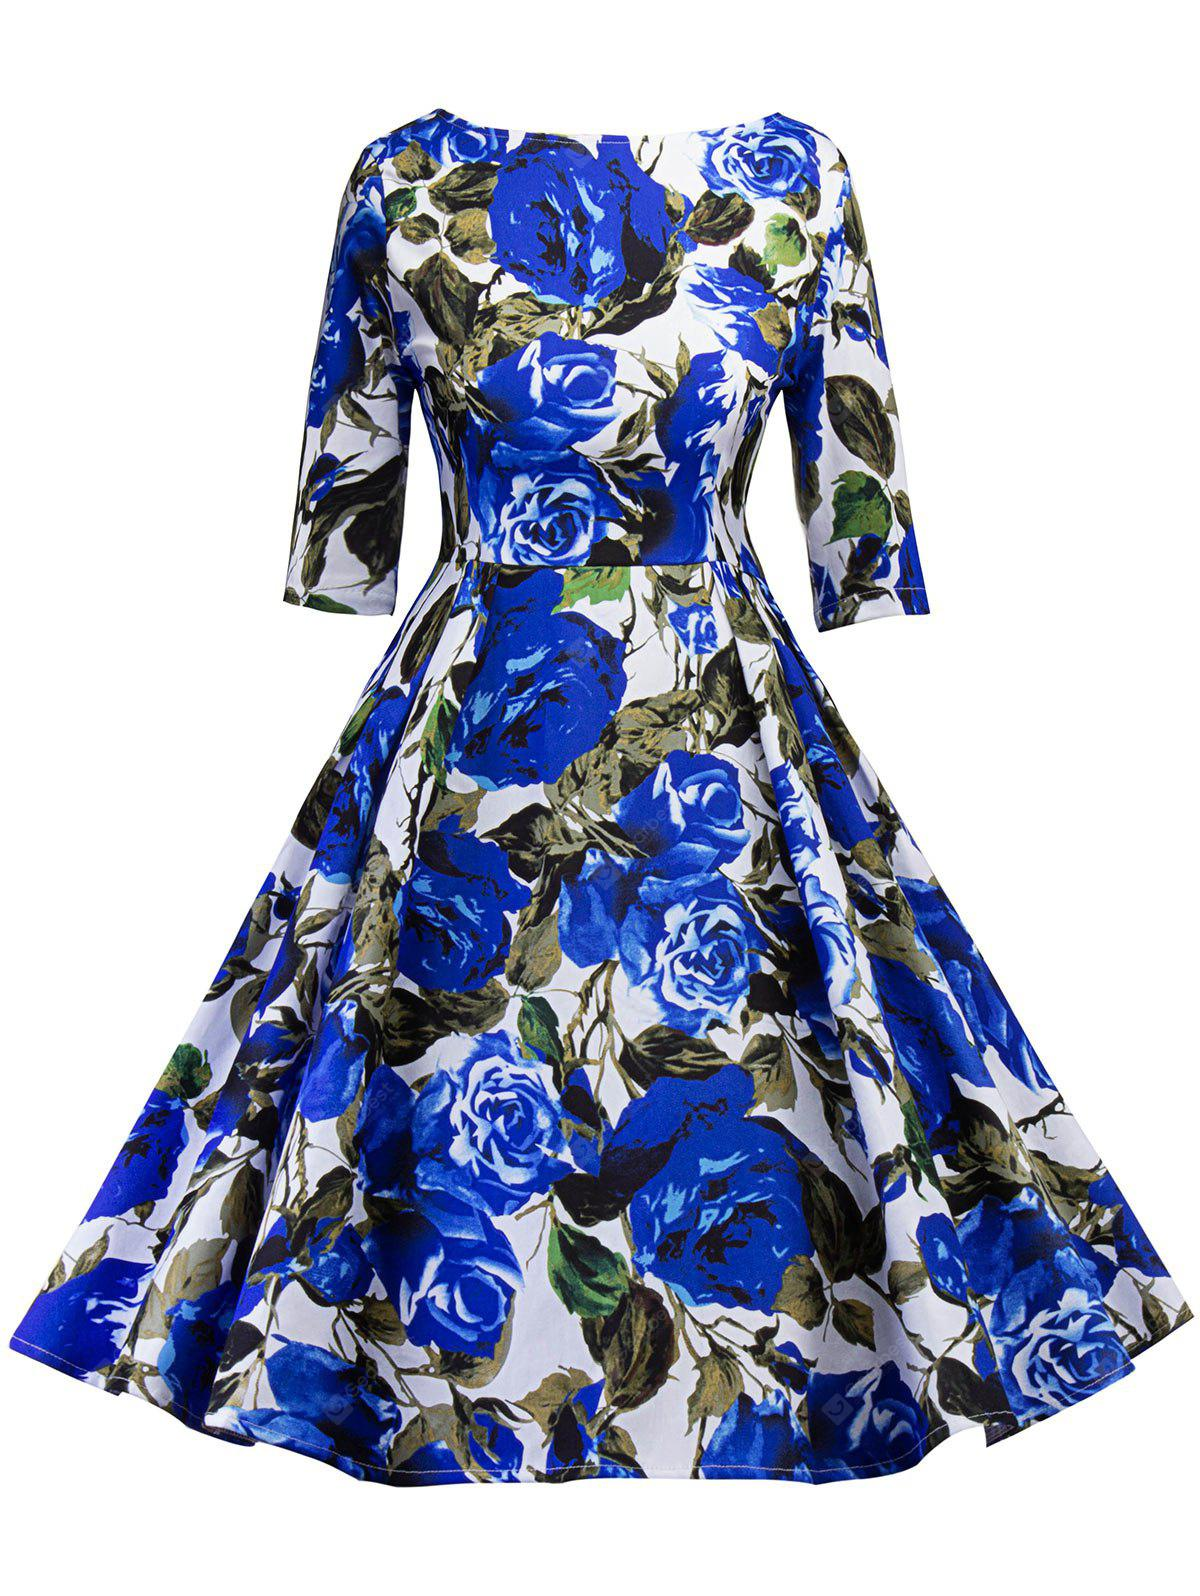 BLUE 2XL Vintage Floral Print Cut Out Pin Up Party Dress